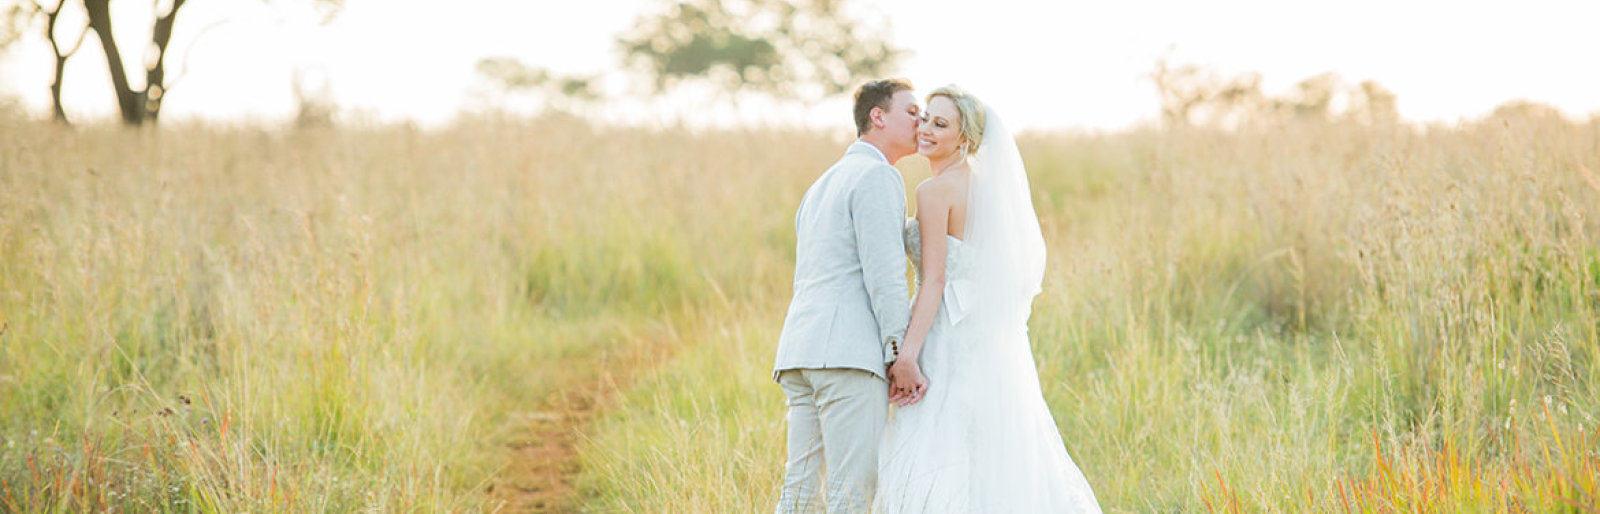 SA Elopement Inspiration!